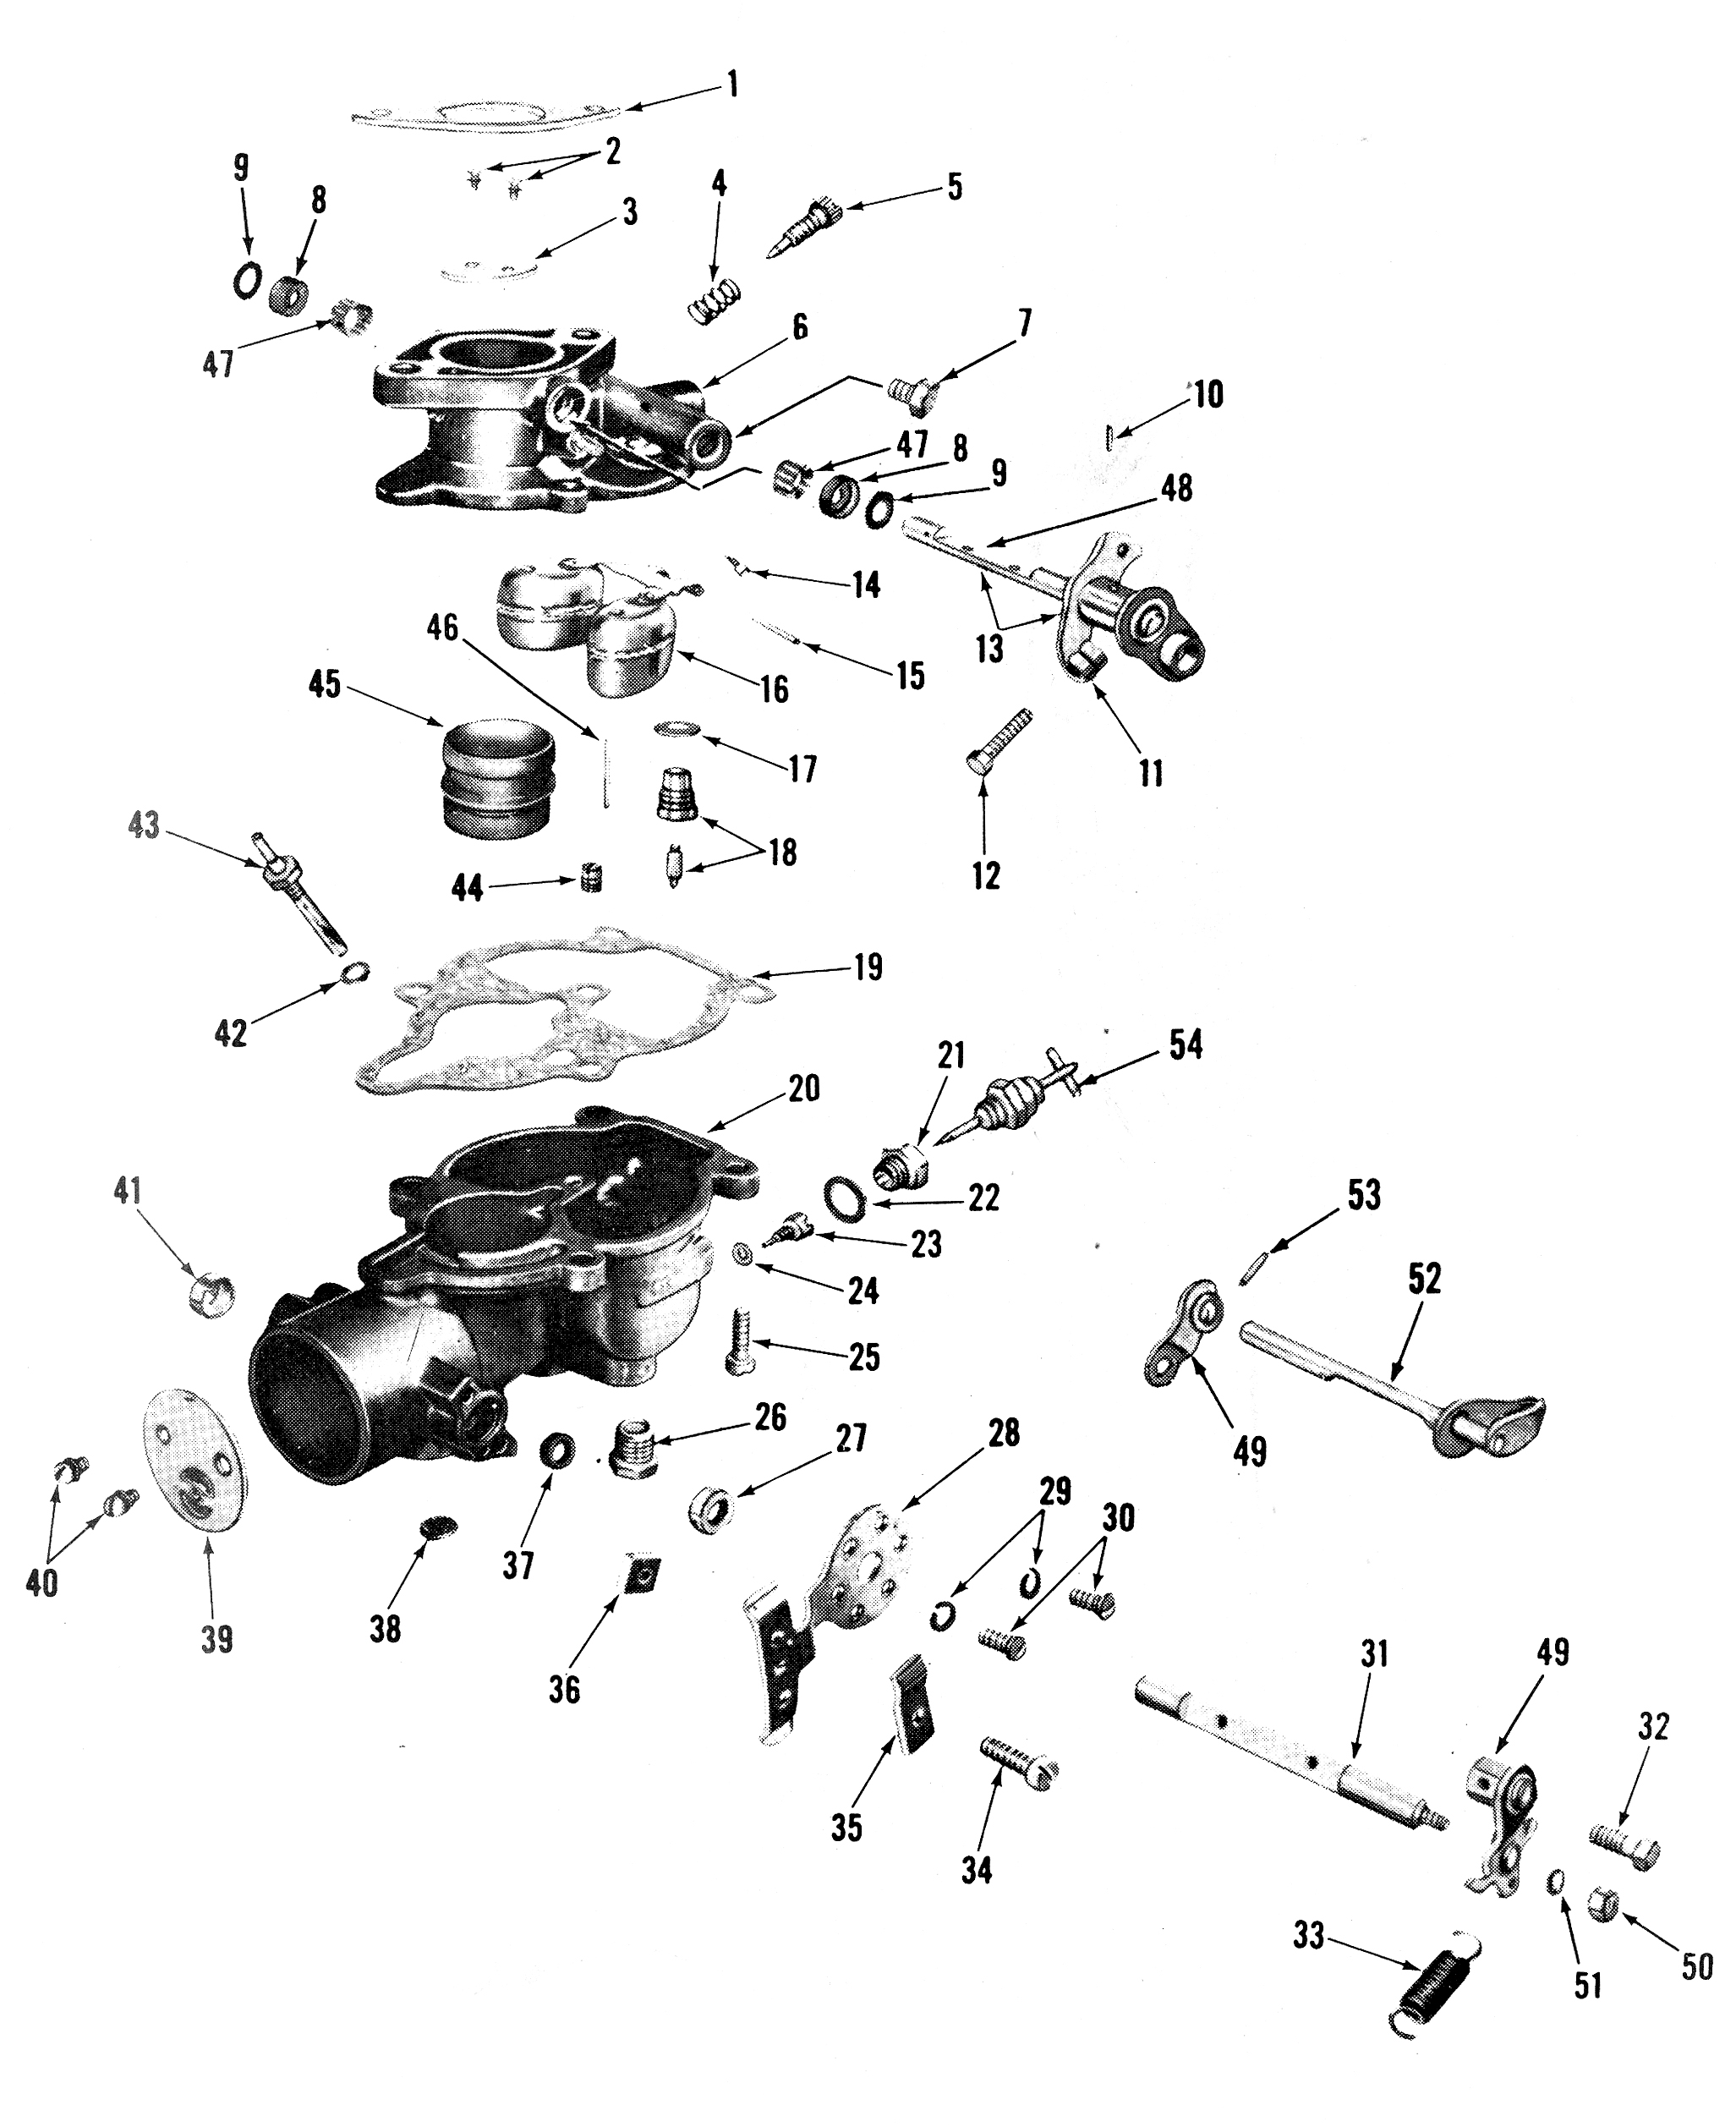 Zenith 12522 carburetor kit float and manual zenith 68 carburetor exploded view ccuart Choice Image